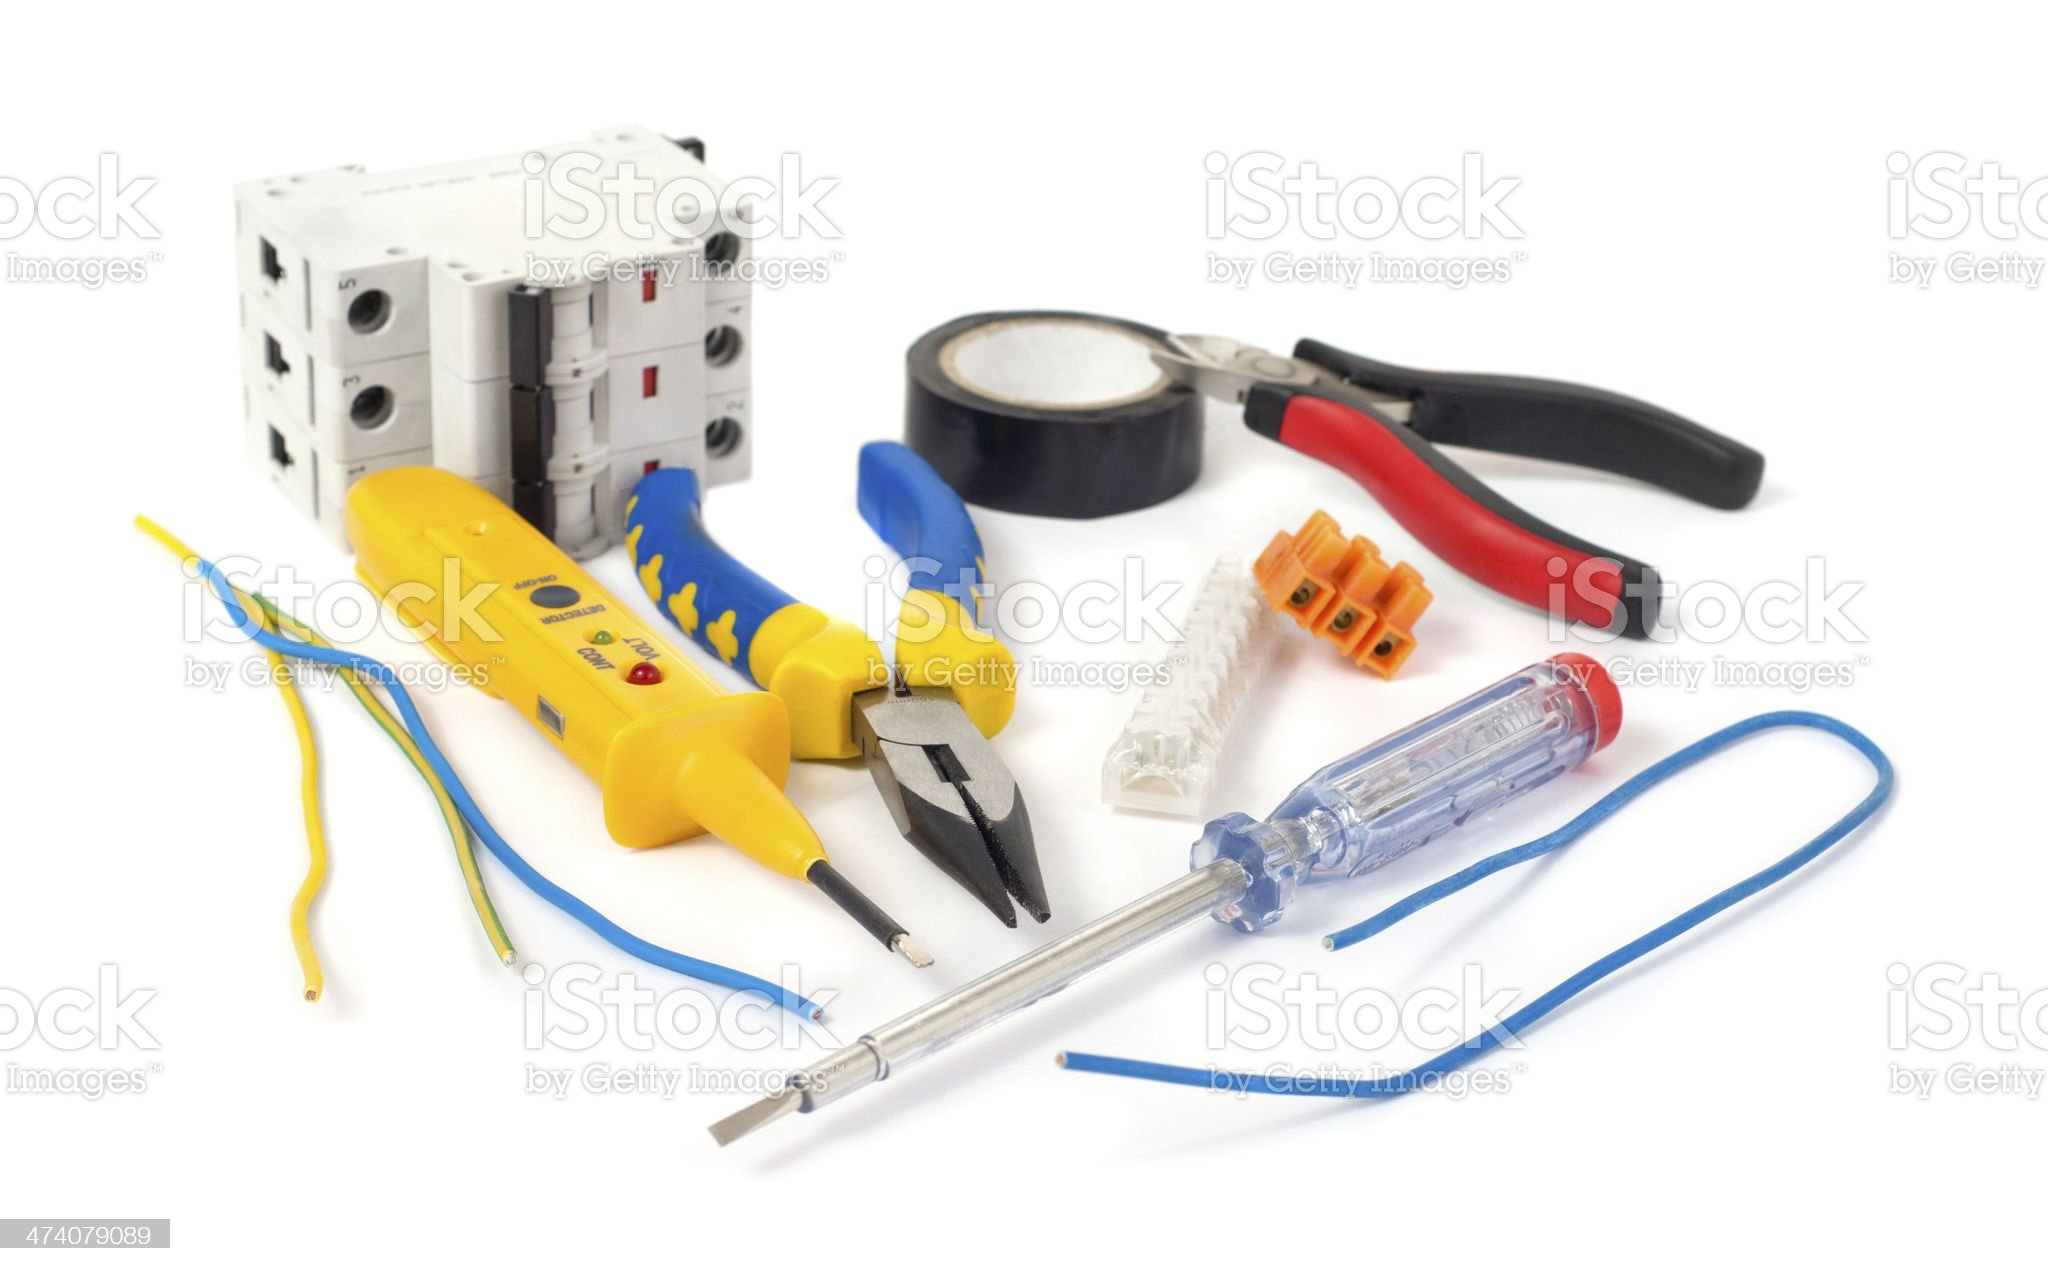 Electrical tools royalty-free stock photo